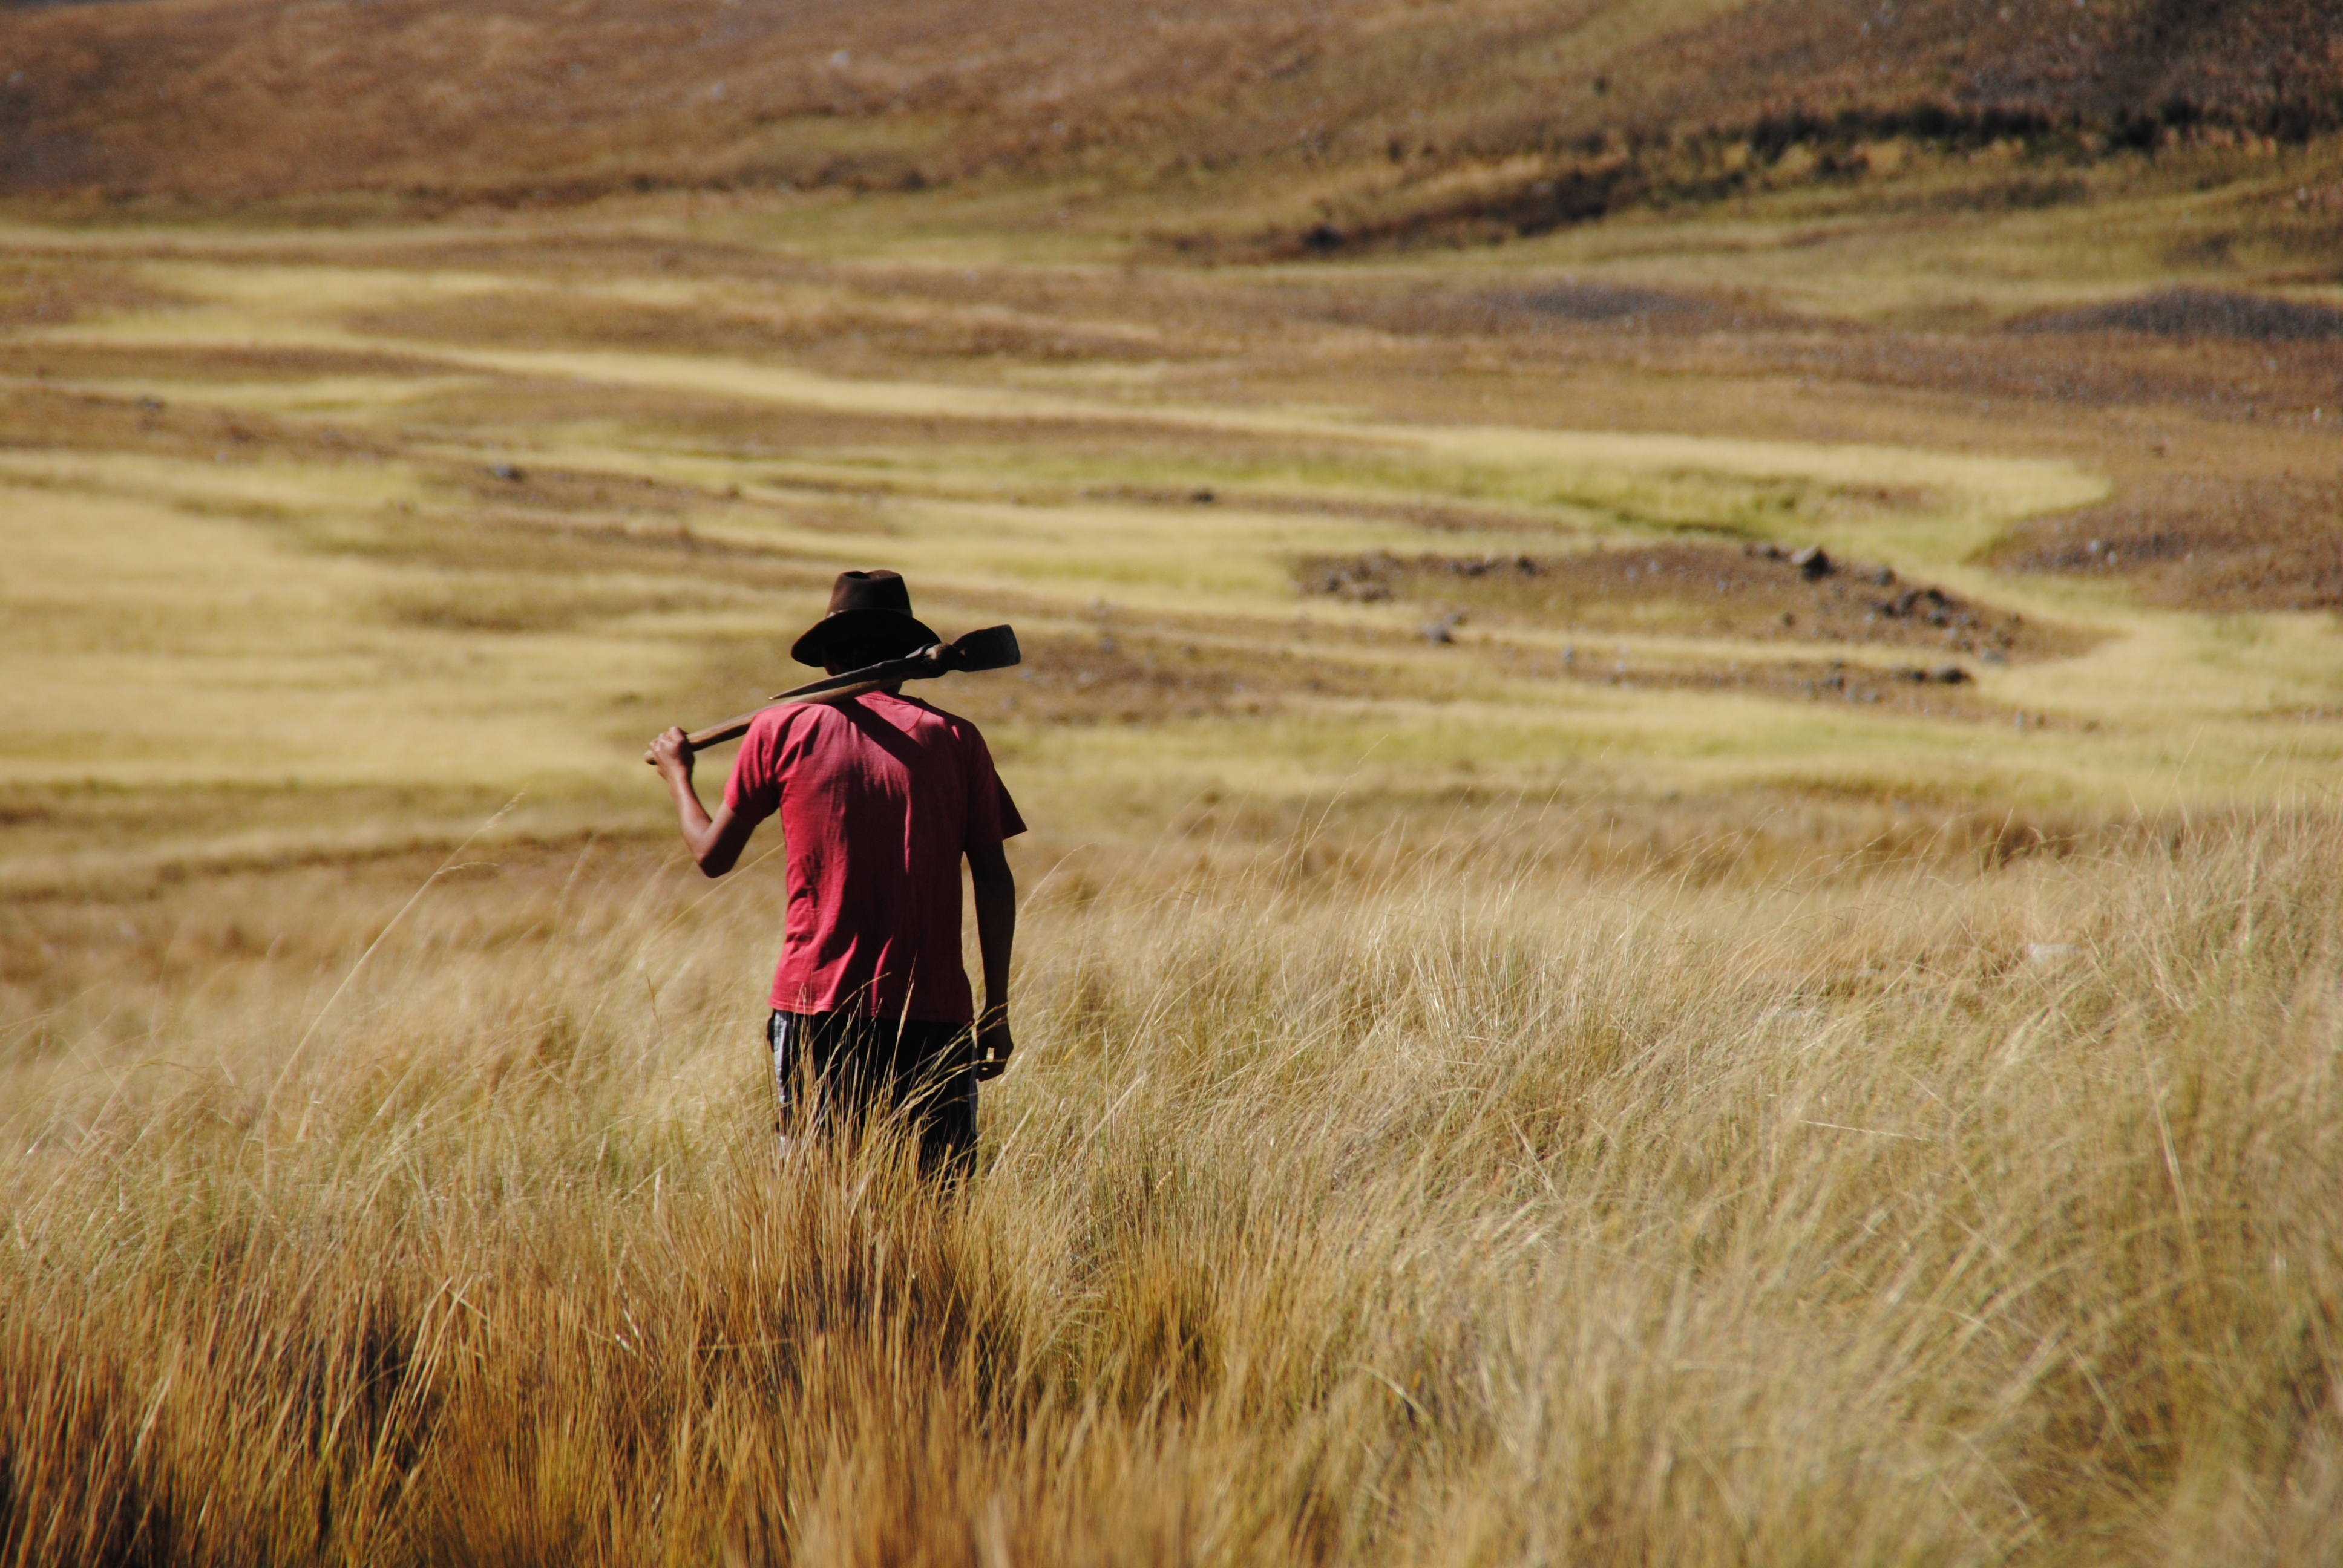 Read more about: The struggle for water in the Andes Mountains